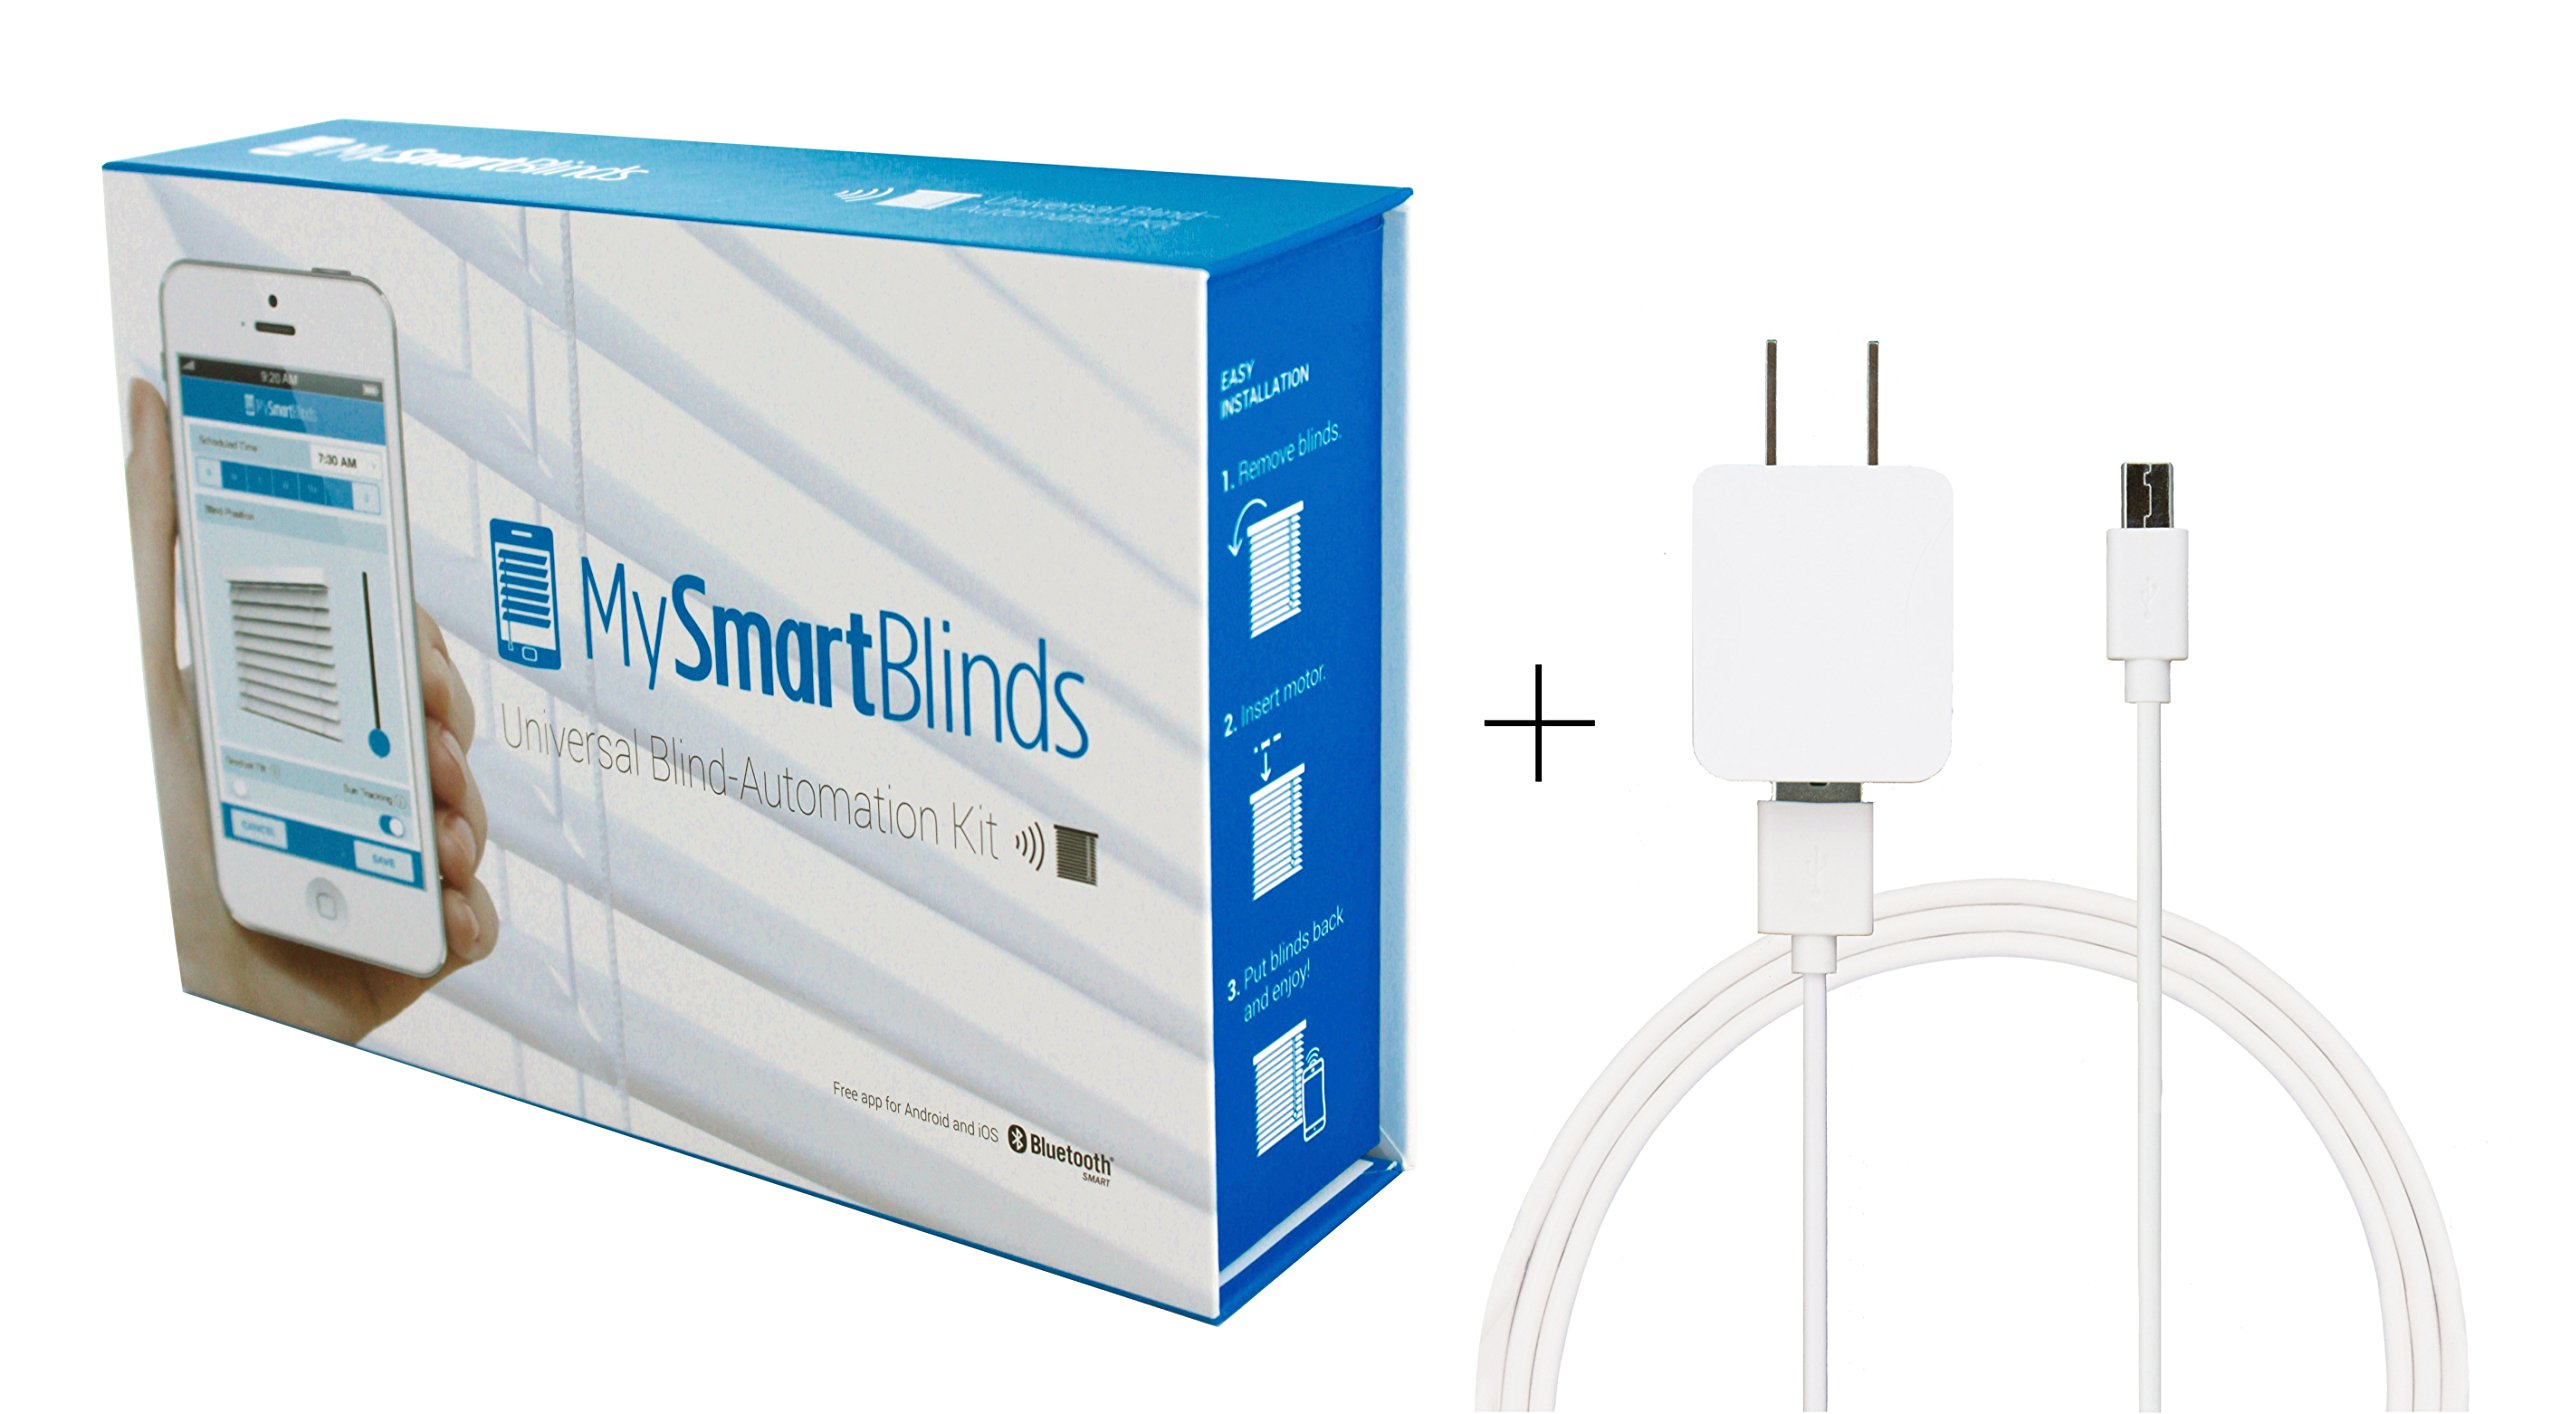 MySmartBlinds Automation Kit + USB charging cable - Convert standard horizontal blinds into automated window treatments in minutes - Charge with included power cord